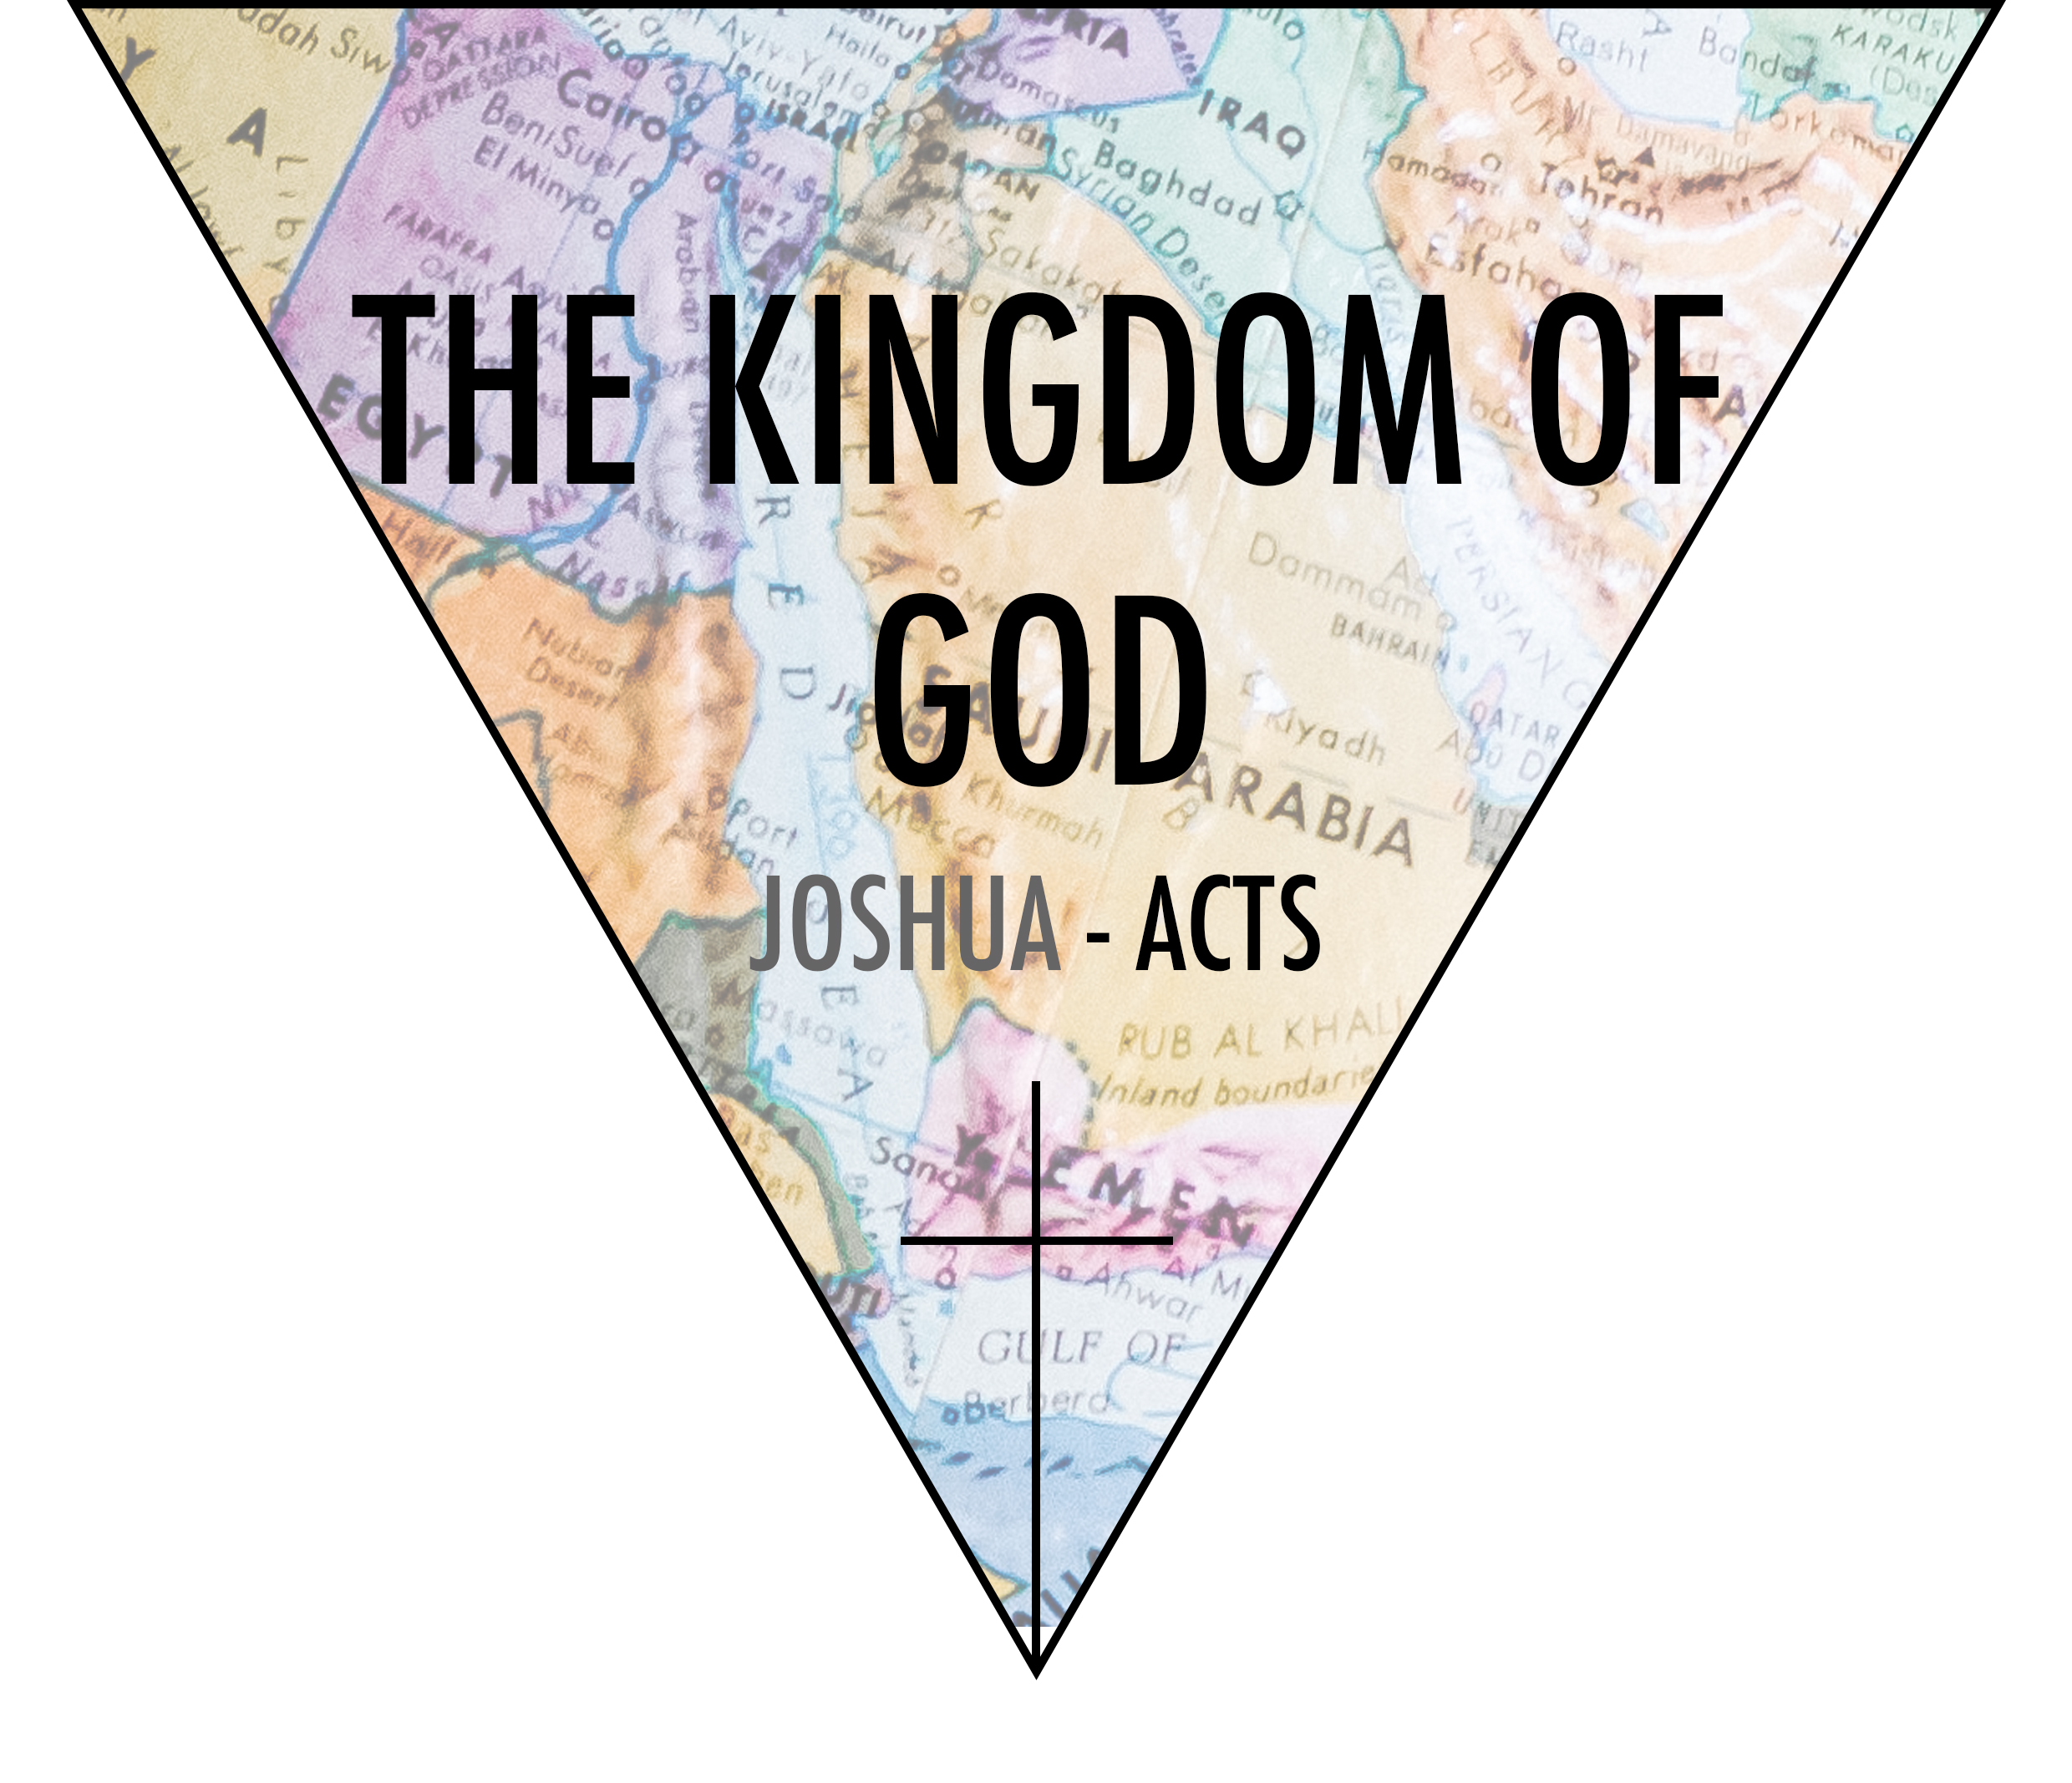 Joshua - Acts (ACTS WEB).jpg